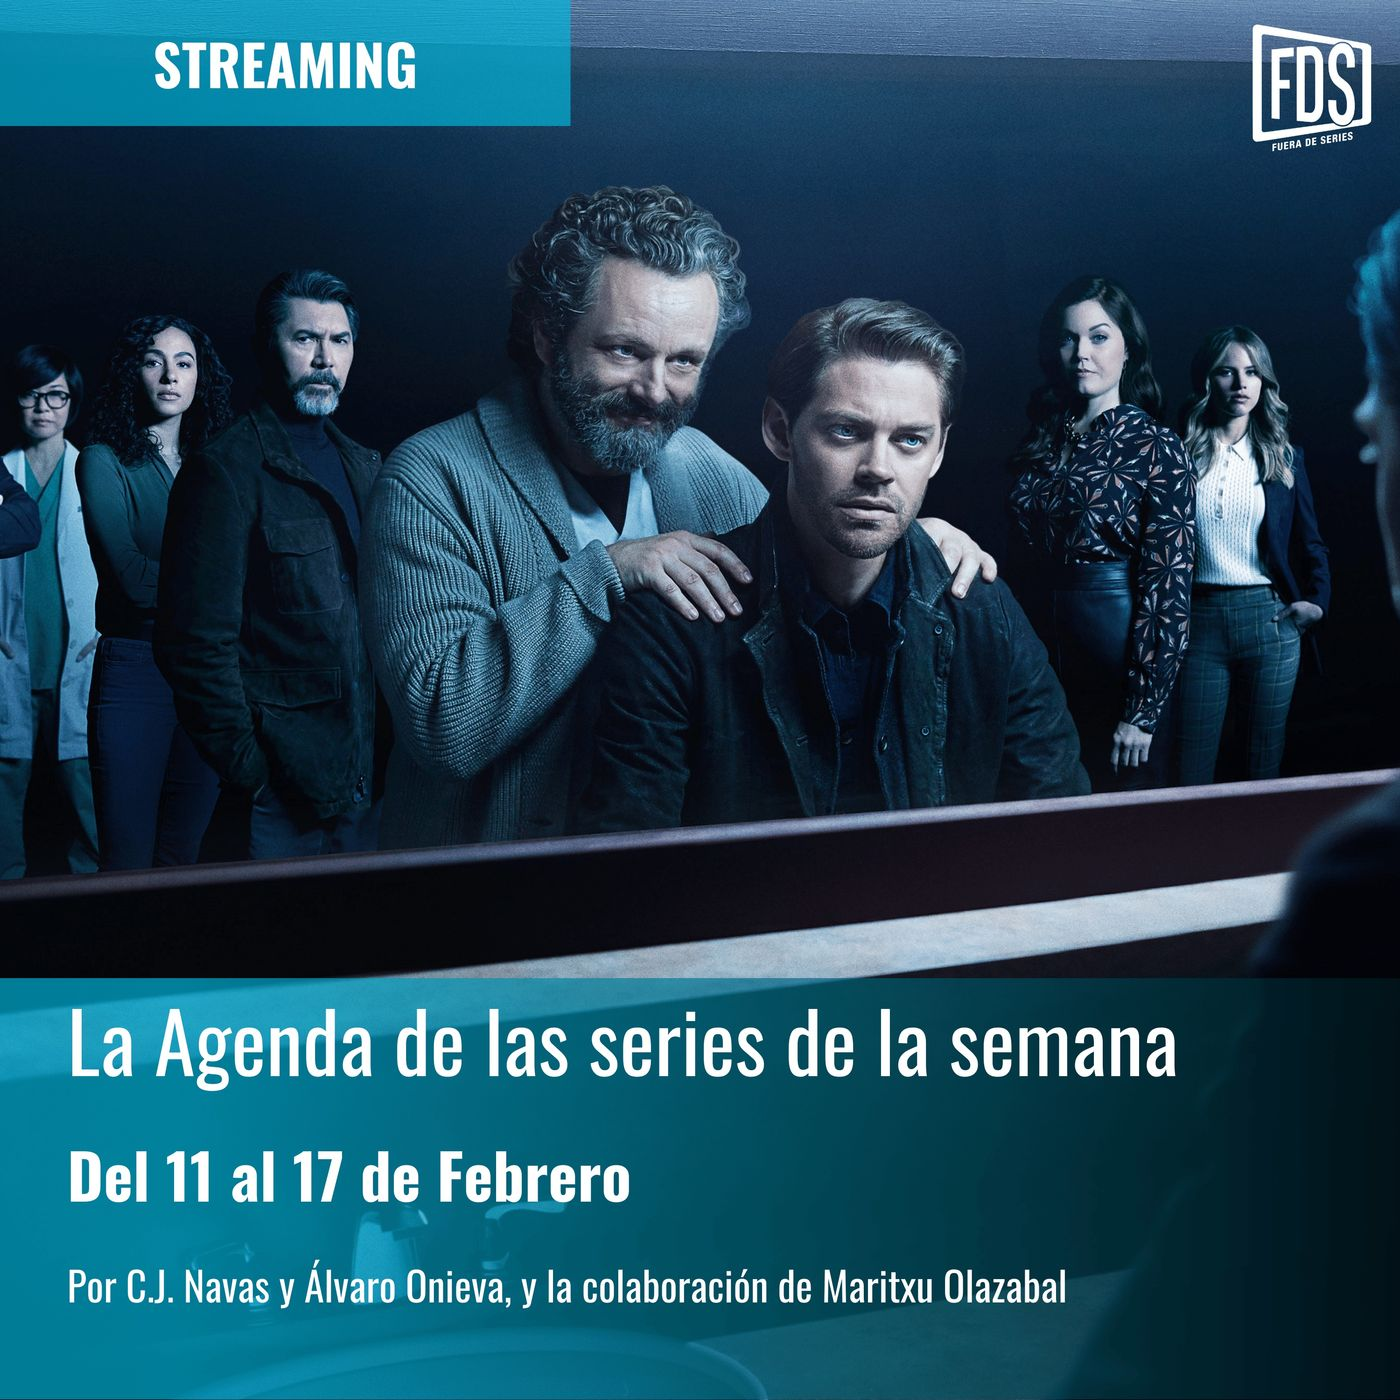 Streaming: Agenda de Series del 11 al 17 de febrero